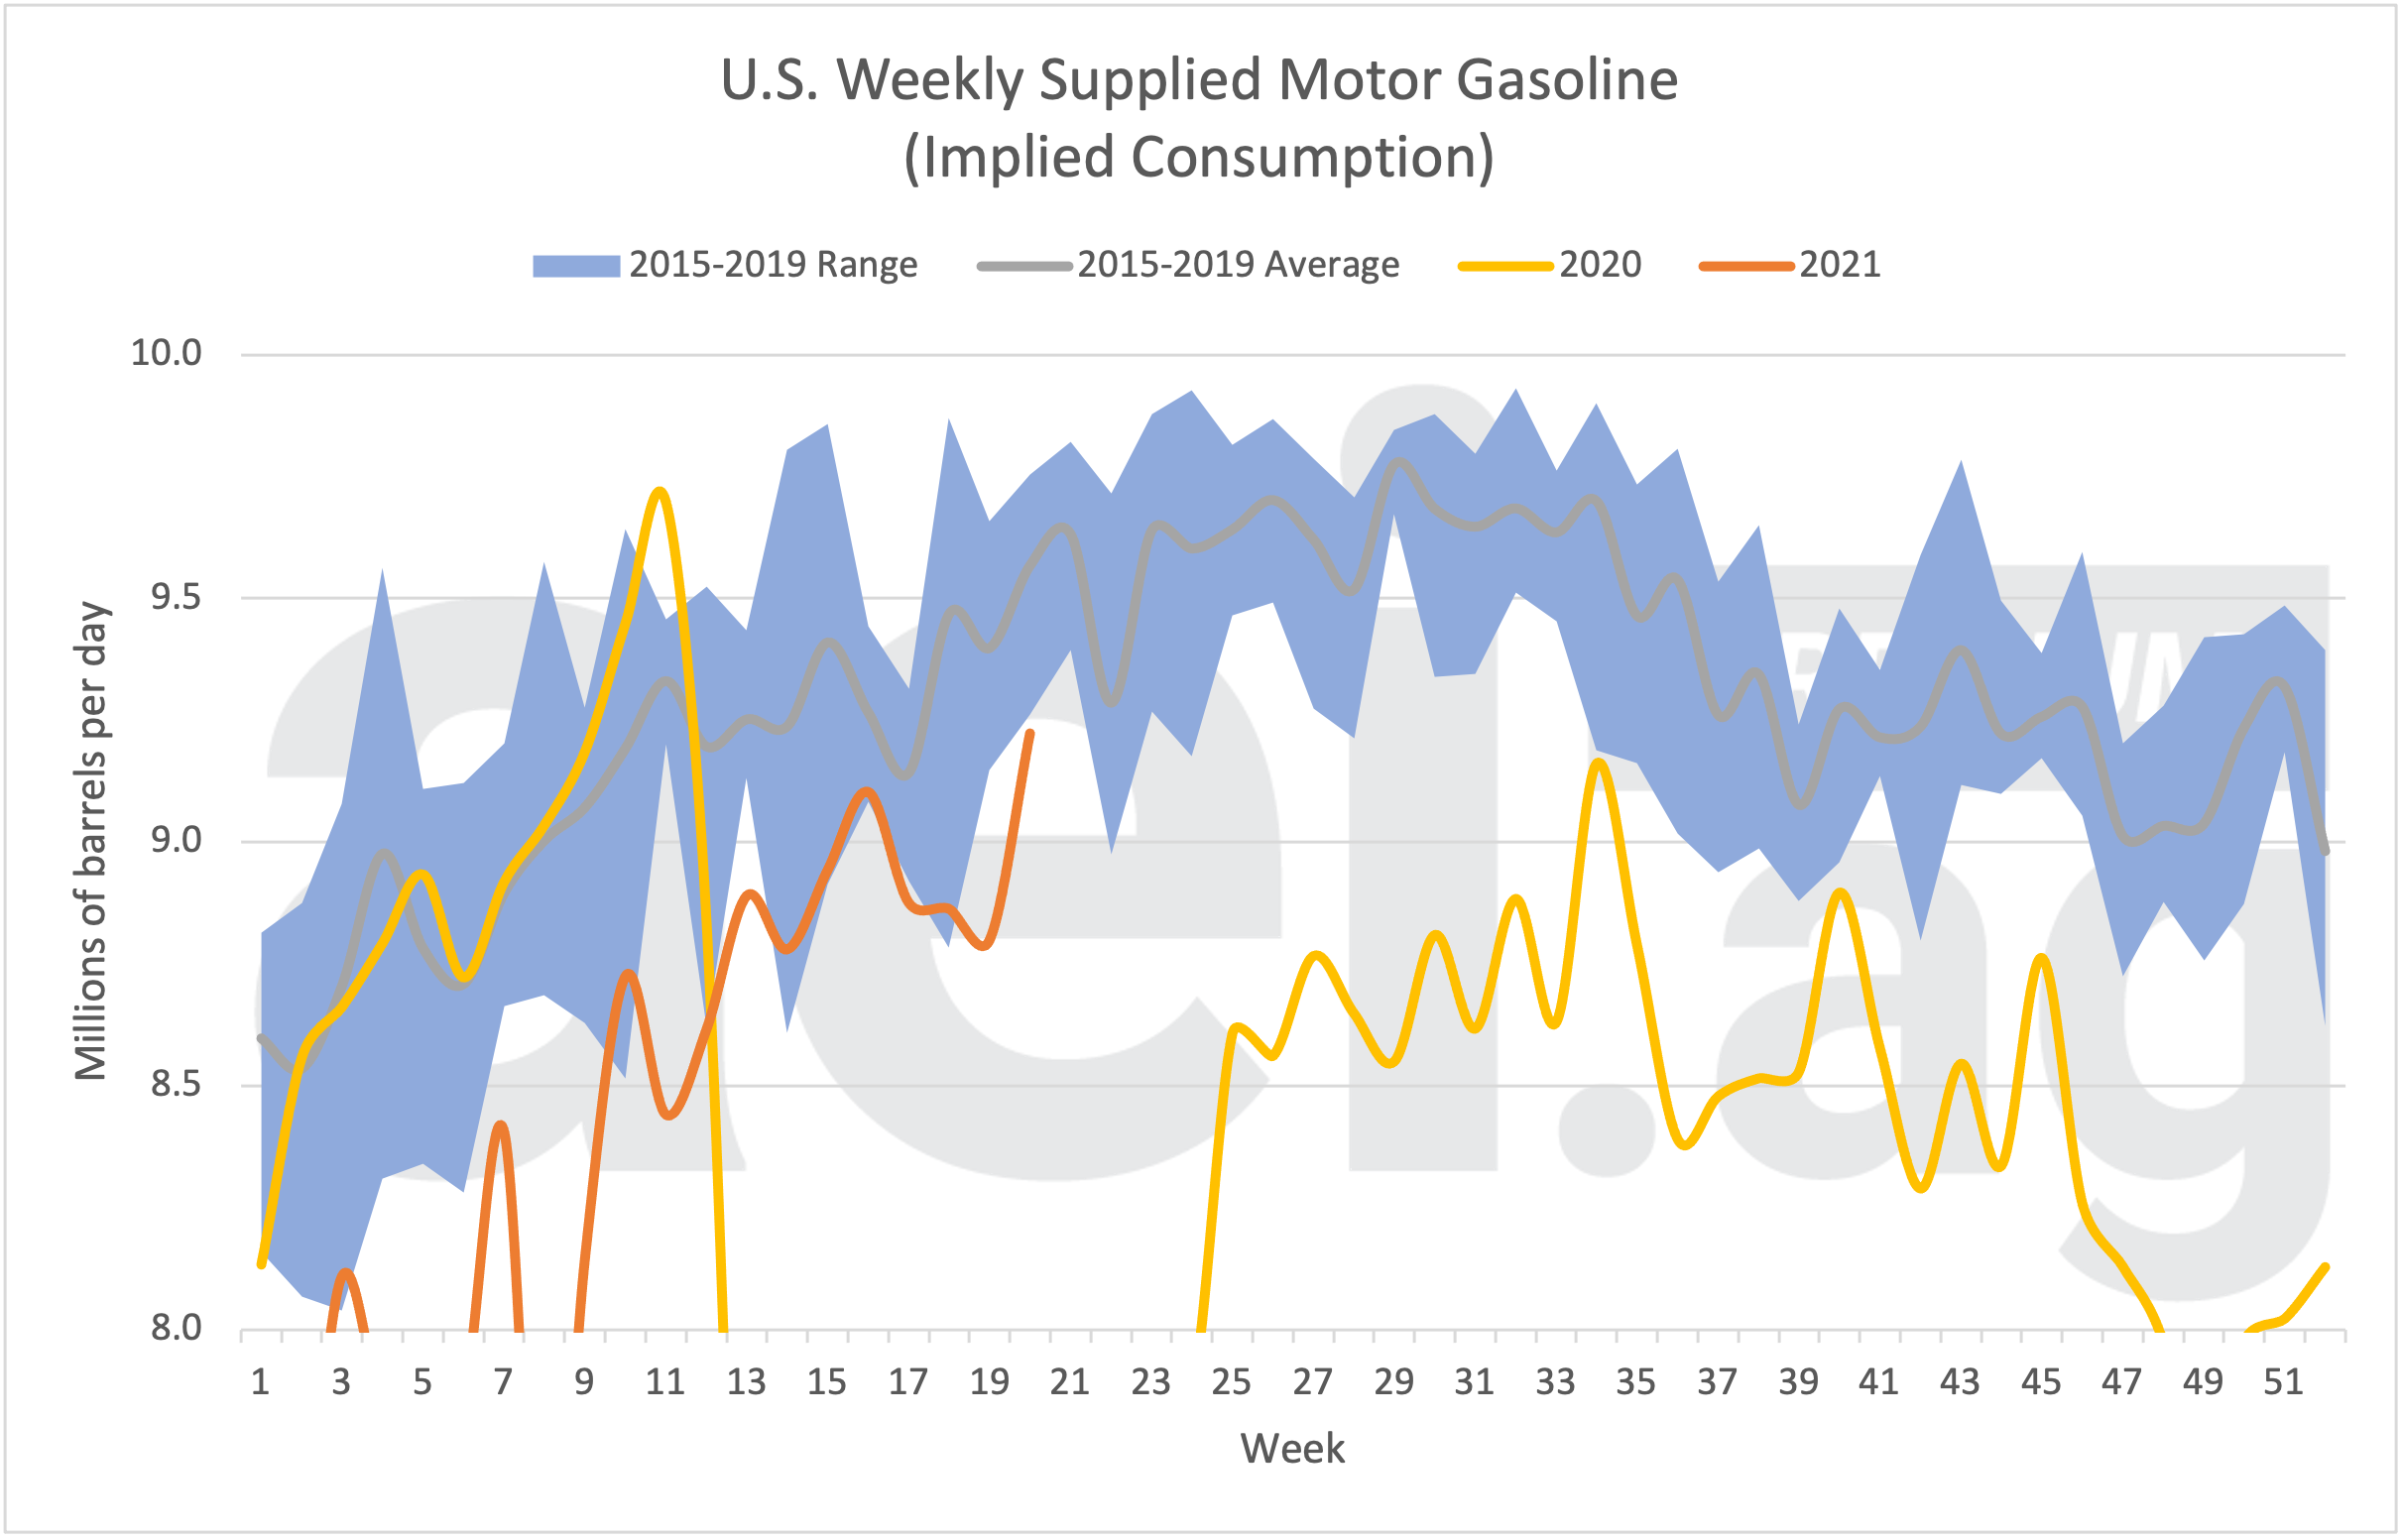 Figure 1b. U.S. Weekly Supplied Motor Gasoline (Implied Consumption). (Scale Skewed to Show Detail). Data Source: US EIA.